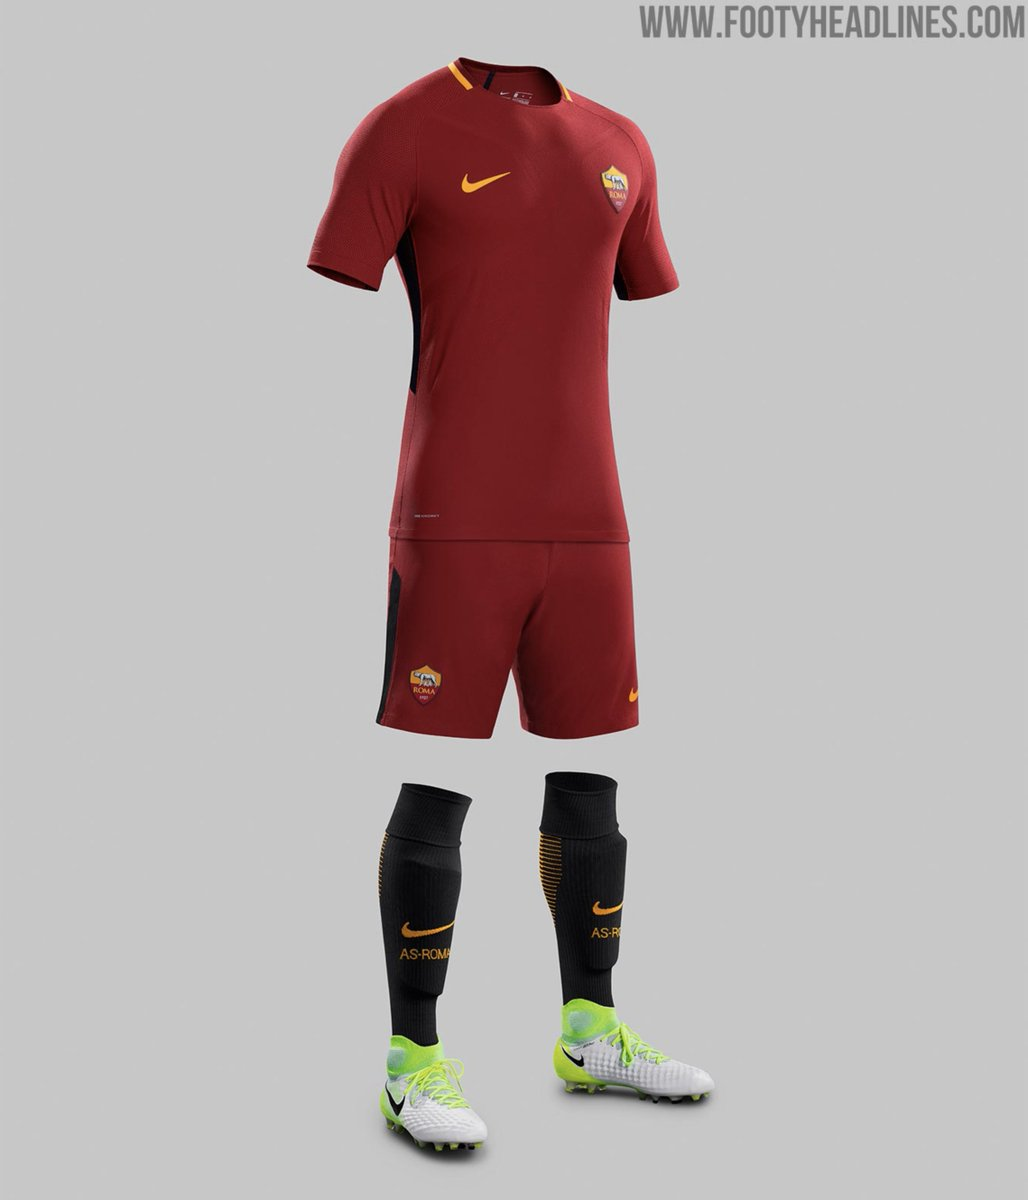 CLASS: The @ASRomaEN 2017/18 Home and Away @NikeFootballl kits. 😍🔥  Al...